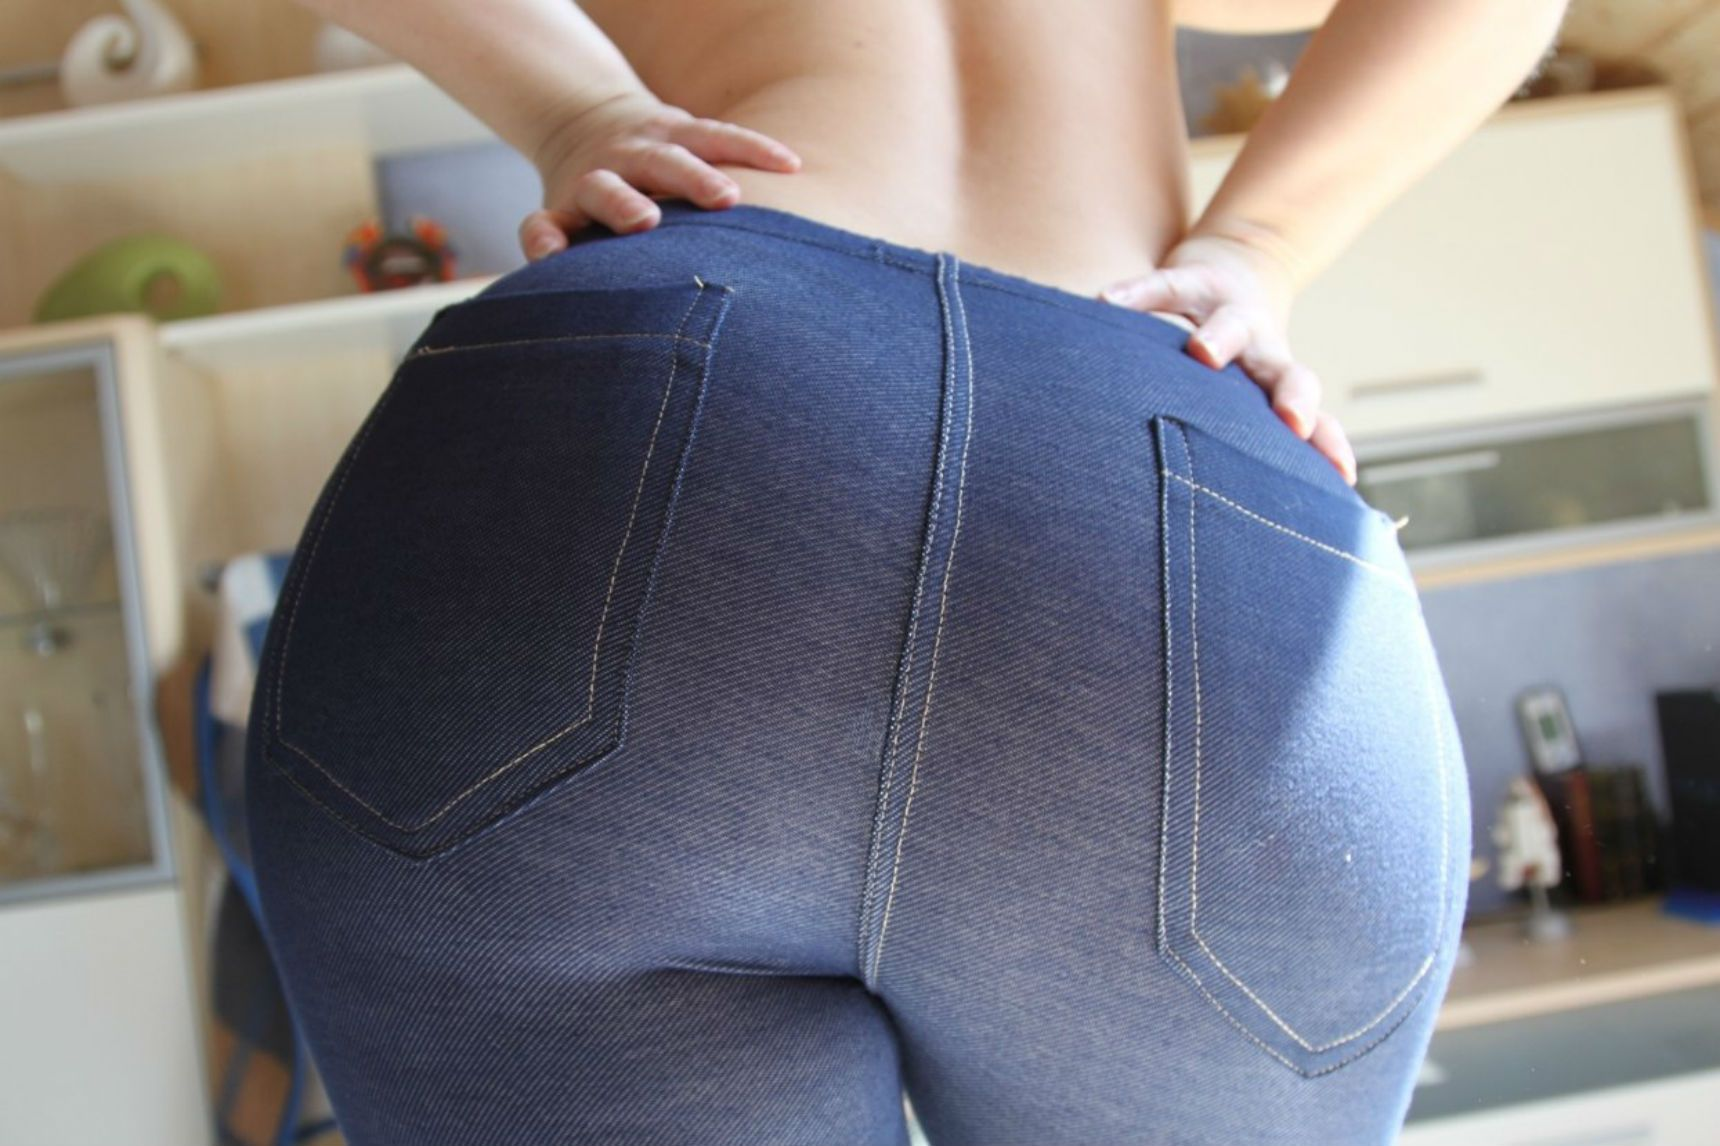 Big ass yoga pants pics